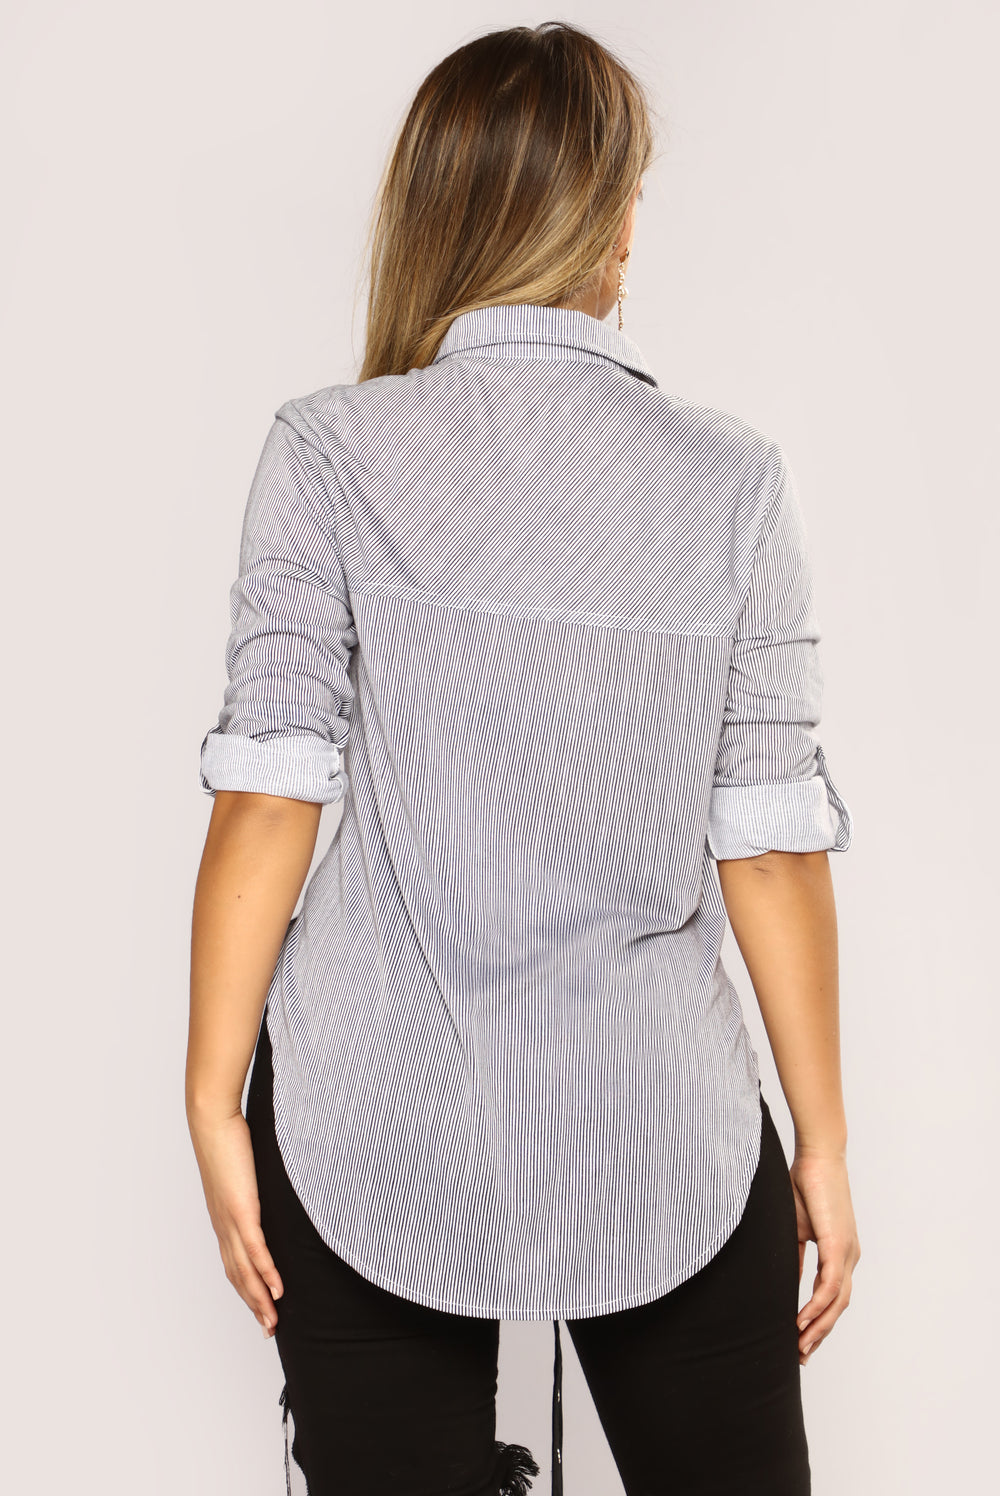 Lounge Lover Striped Top - Black Pattern